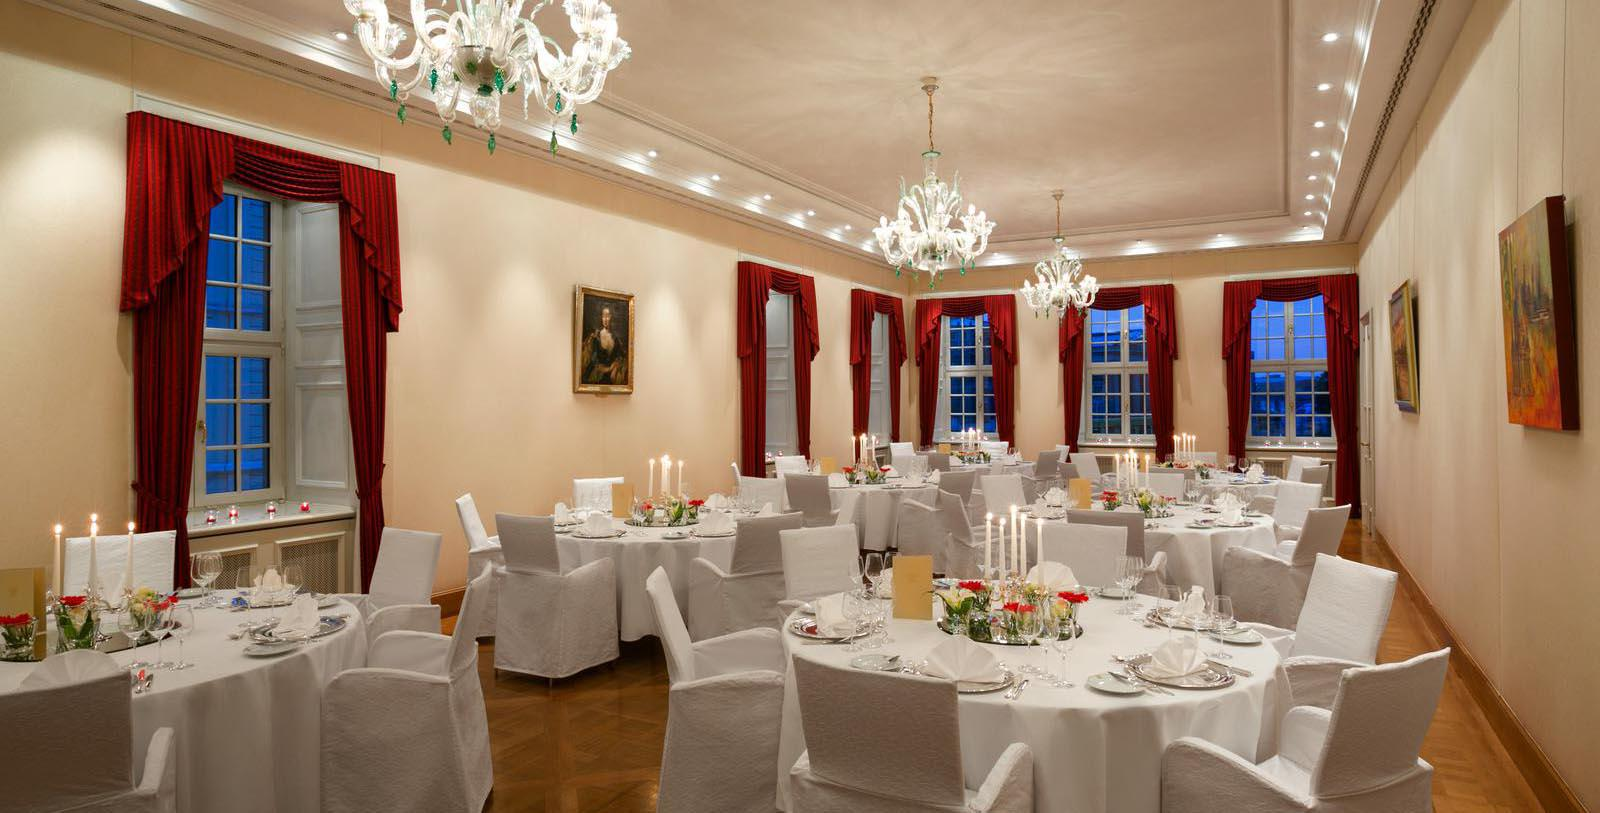 Image of Meeting Room Banquet, Hotel Taschenbergpalais Kempinski Dresden, Germany, 1700s, Member of Historic Hotels Worldwide, Special Occasions